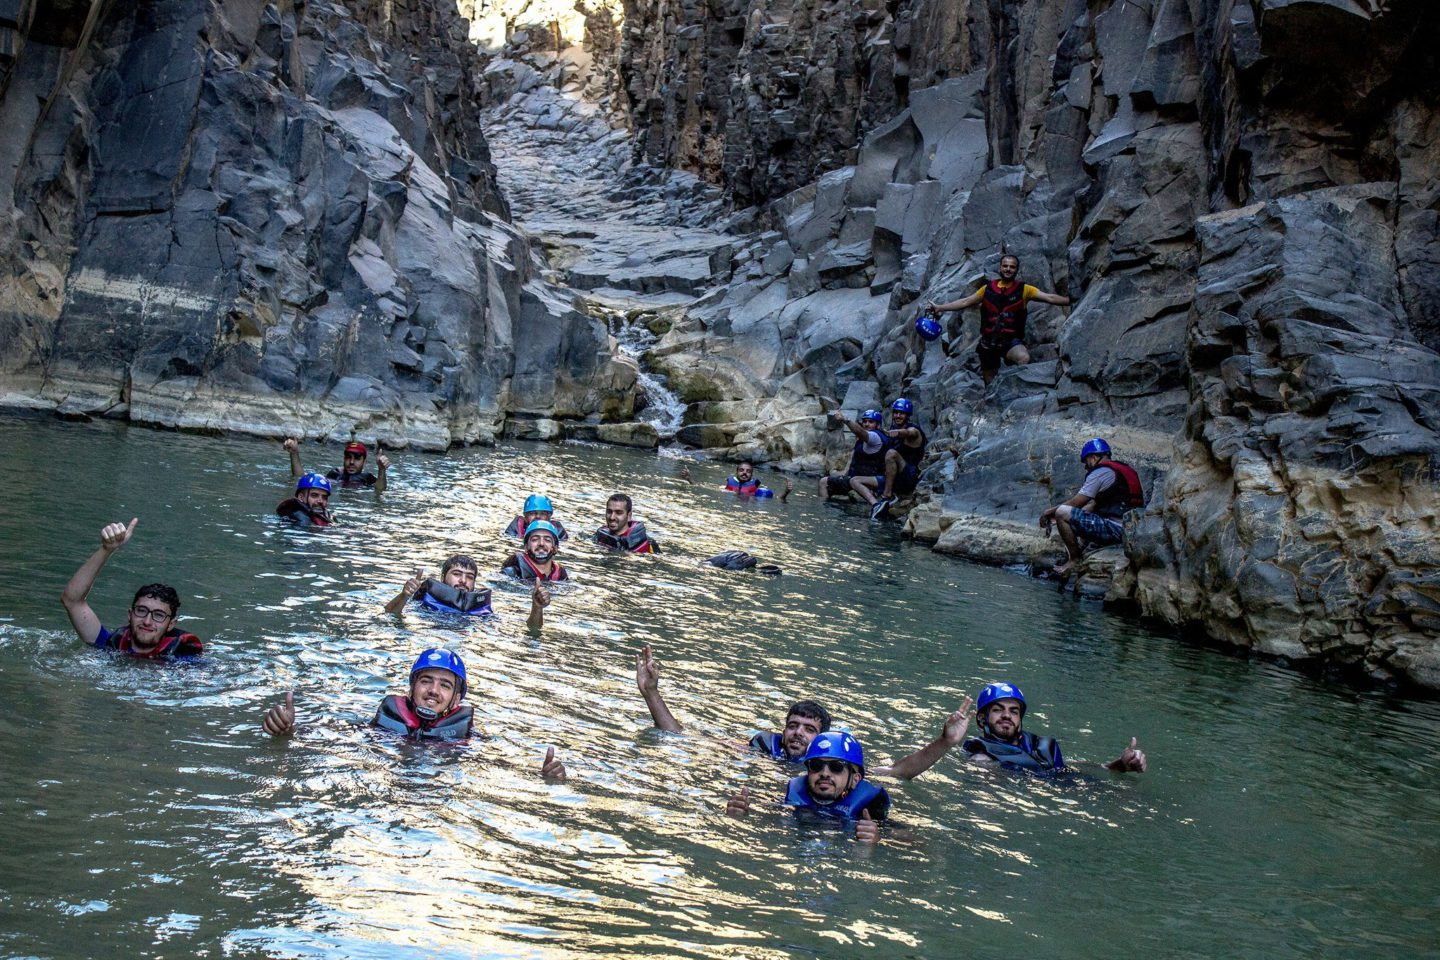 Ecotourism saves the day for a Jordanian wadi on the brink of destruction |The Switchers